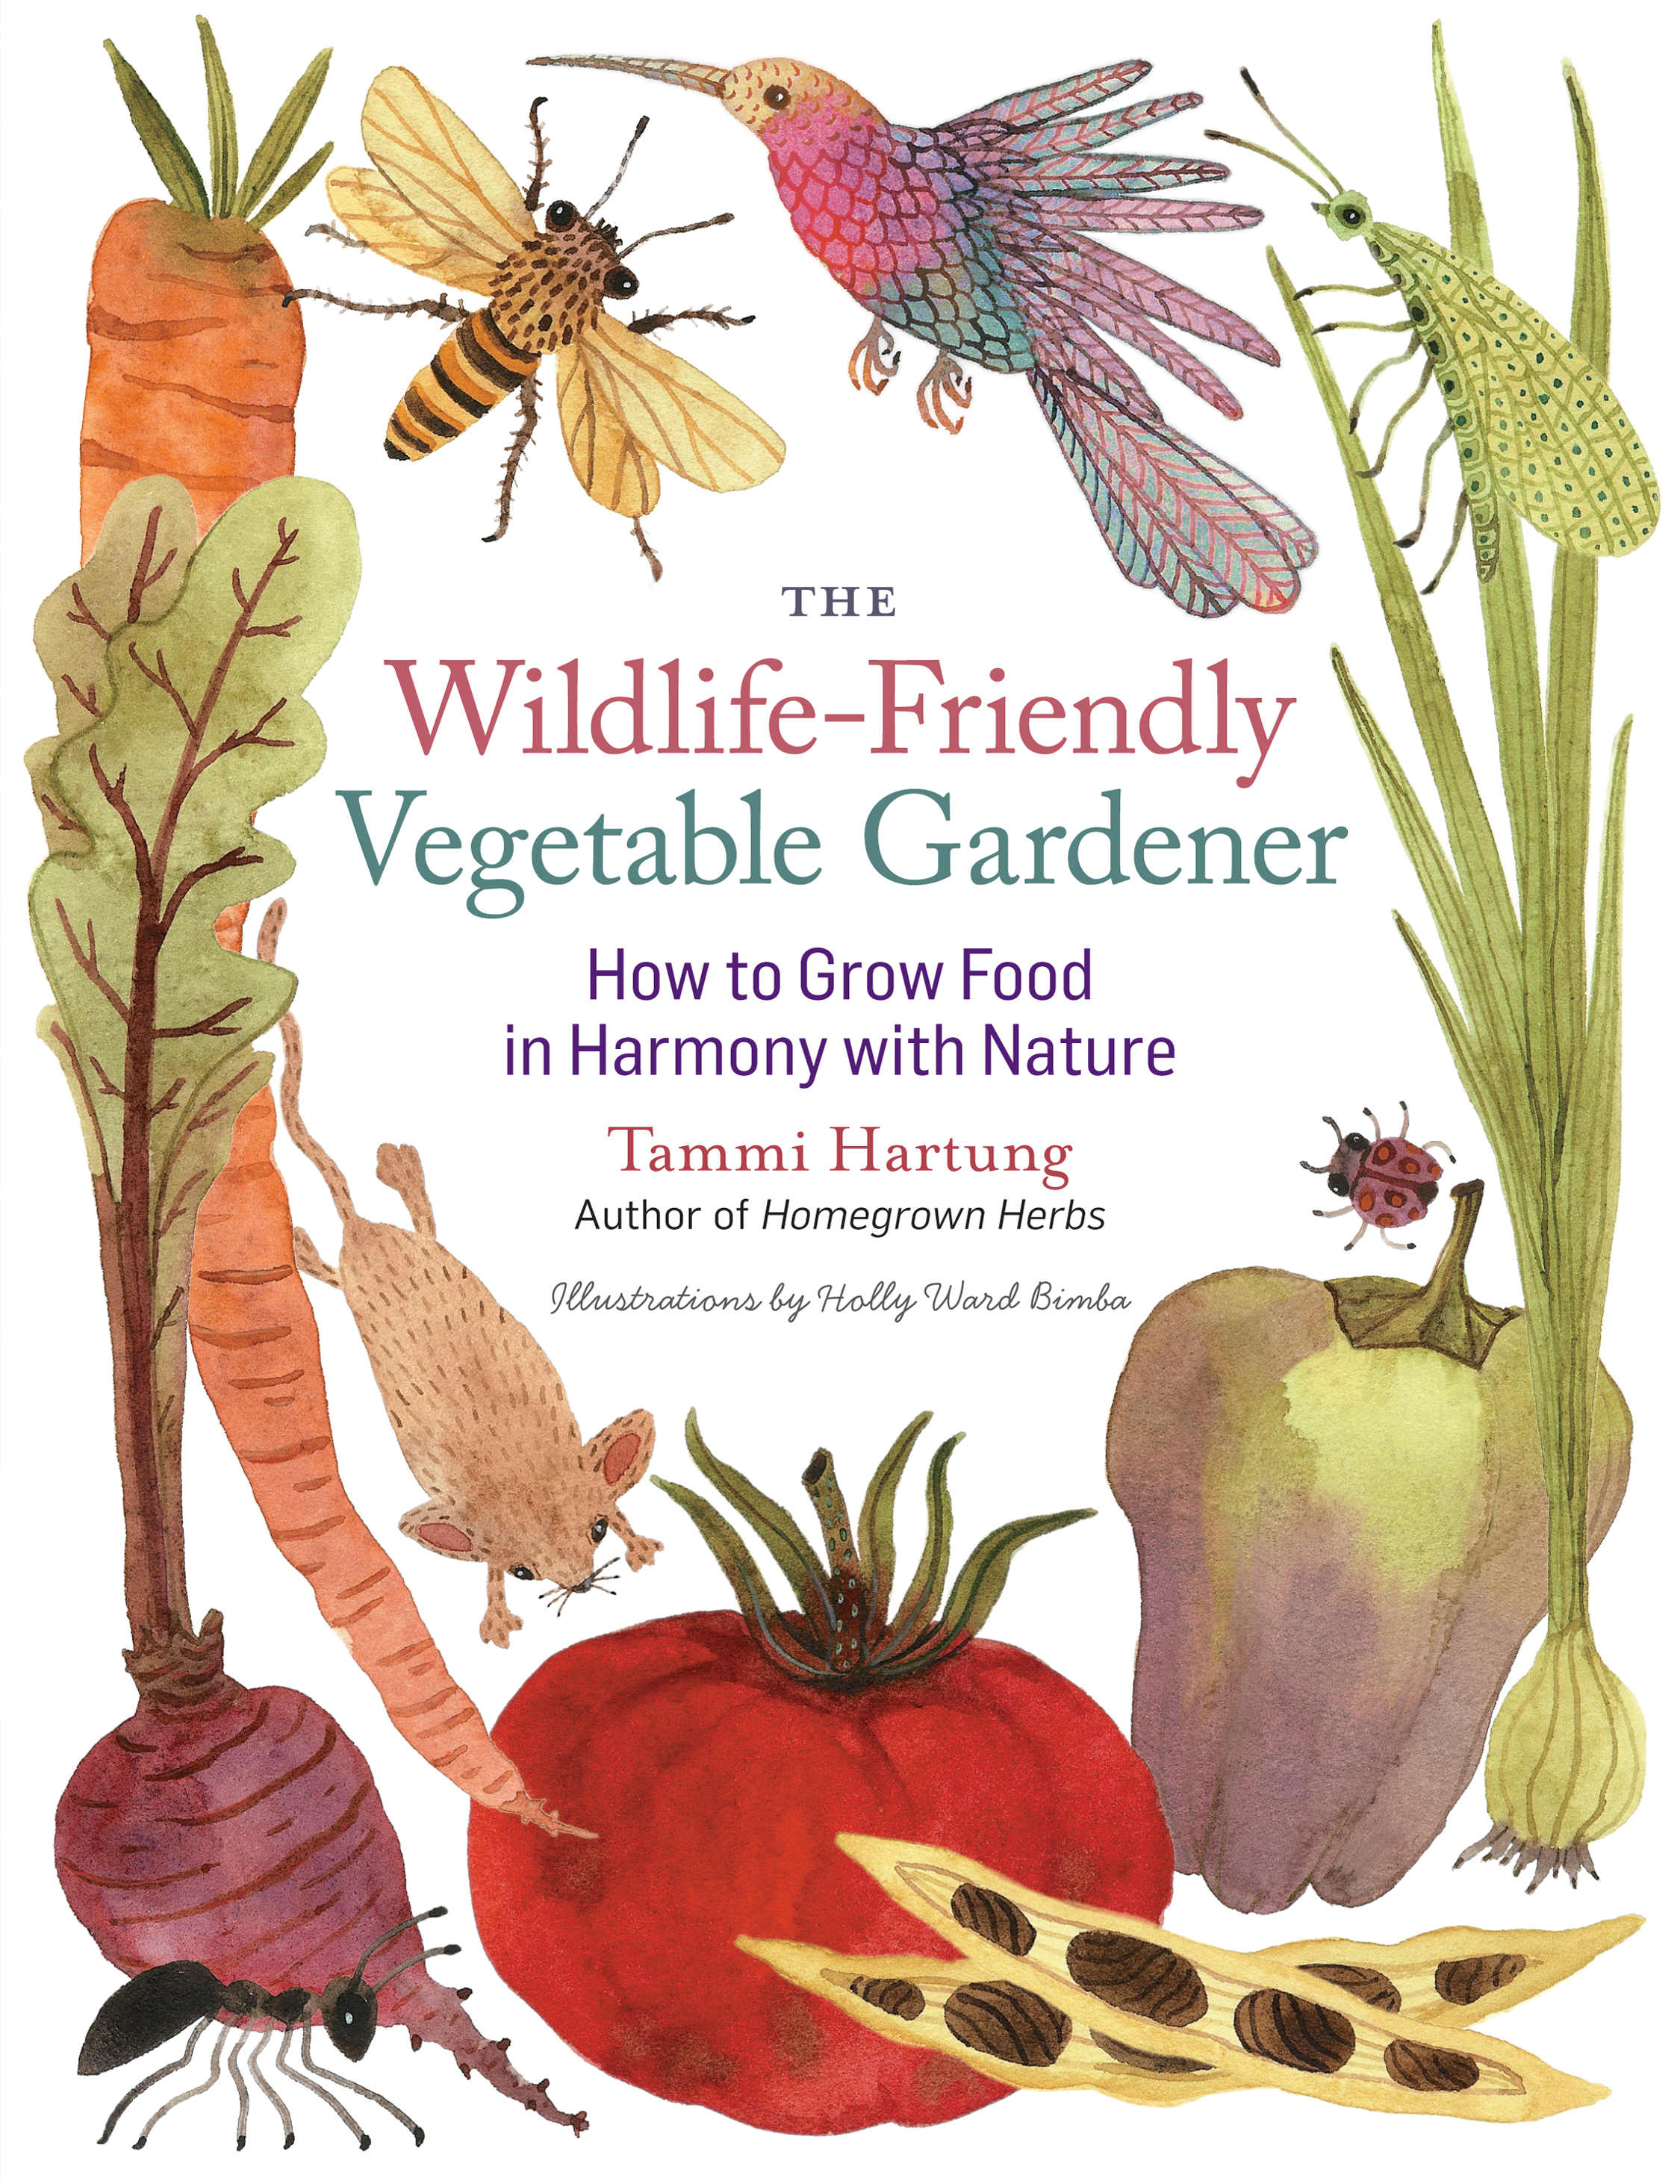 The Wildlife-Friendly Vegetable Gardener How to Grow Food in Harmony with Nature - Tammi Hartung